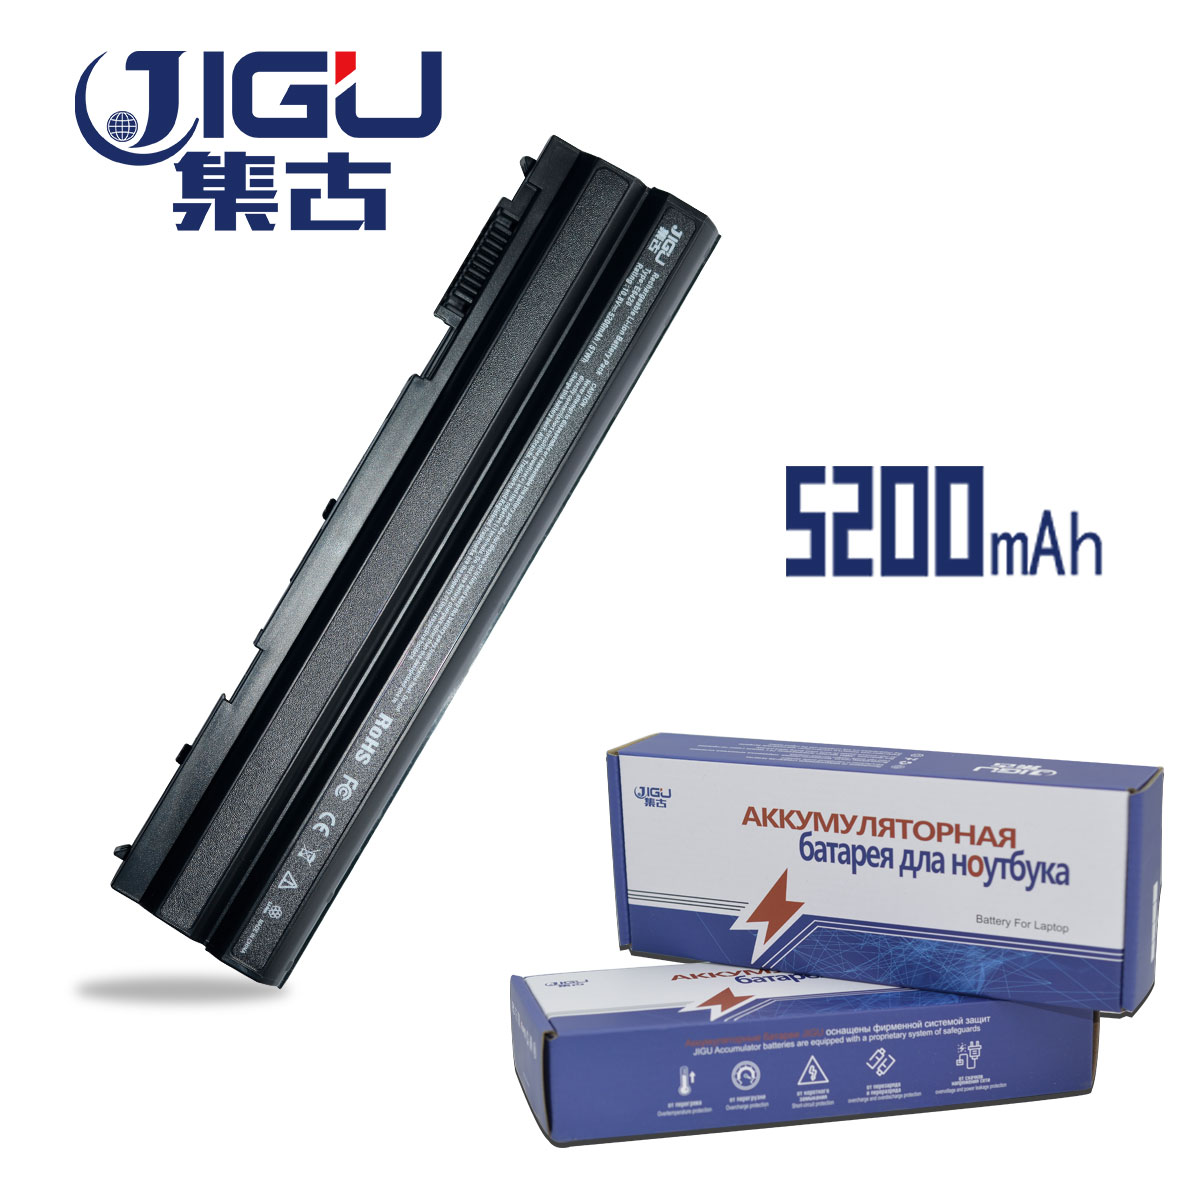 JIGU Battery For Dell Latitude <font><b>E5420</b></font> E5420m E5430 E5520 E5530 E6120 E6420 E6430 E6520 E6530 04NW9 05G67C N4520 N4720 6CELLS image